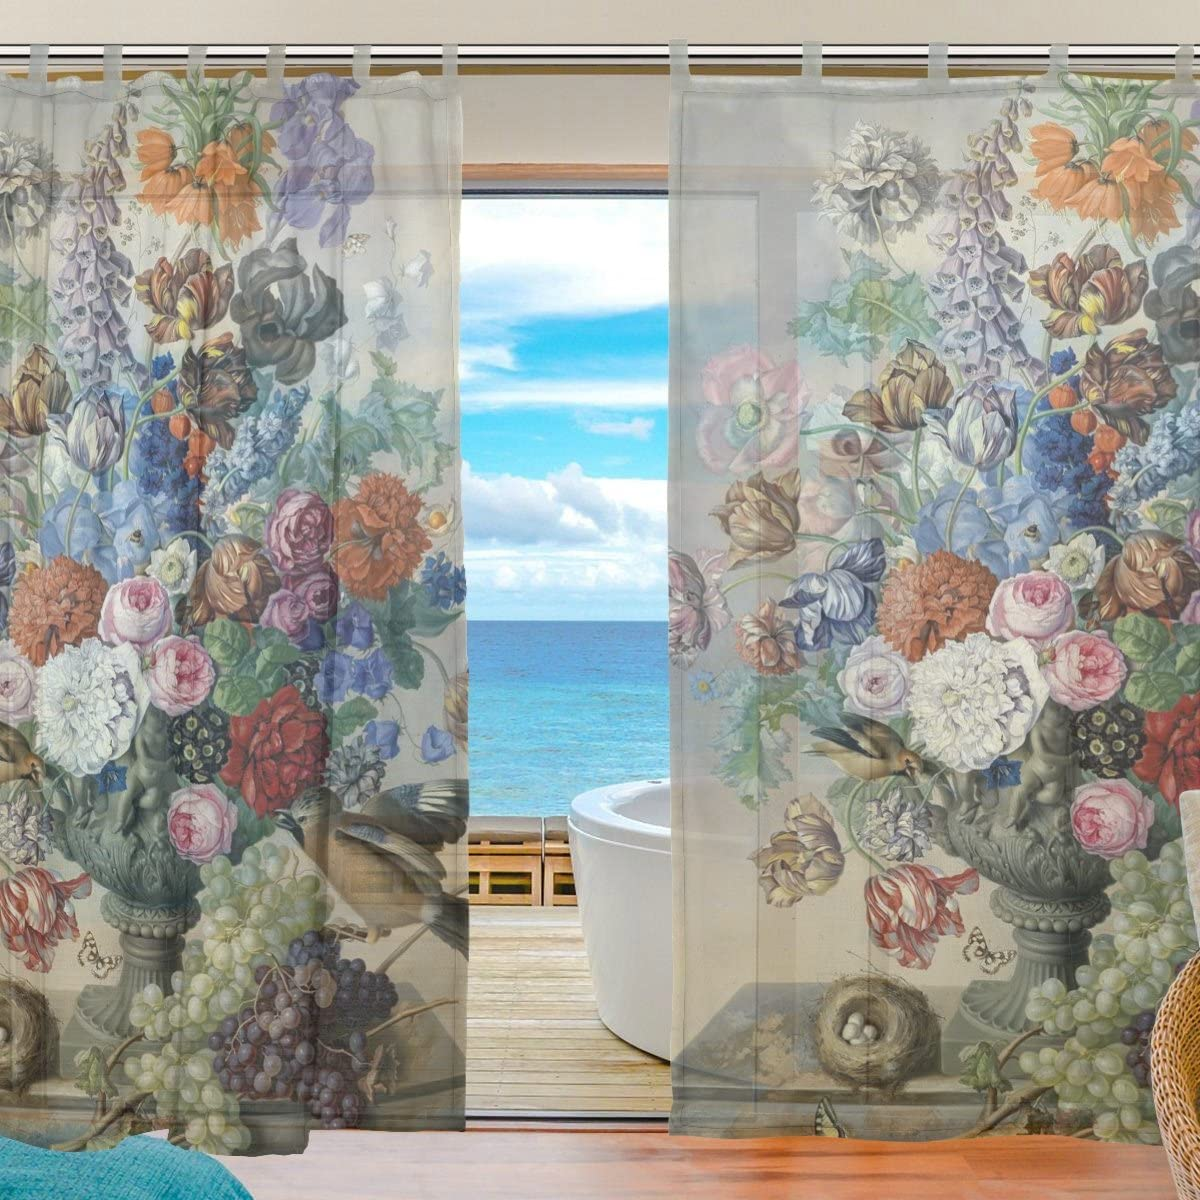 ALAZA 2PCS Window Decoration Sheer Curtain Panels,Euro Style Art Vintage Floral Oil Painting,Window Gauze Curtains Living Room Bedroom Kid s Office Window Tie Top Curtain 55×78 inch Two Panels Set